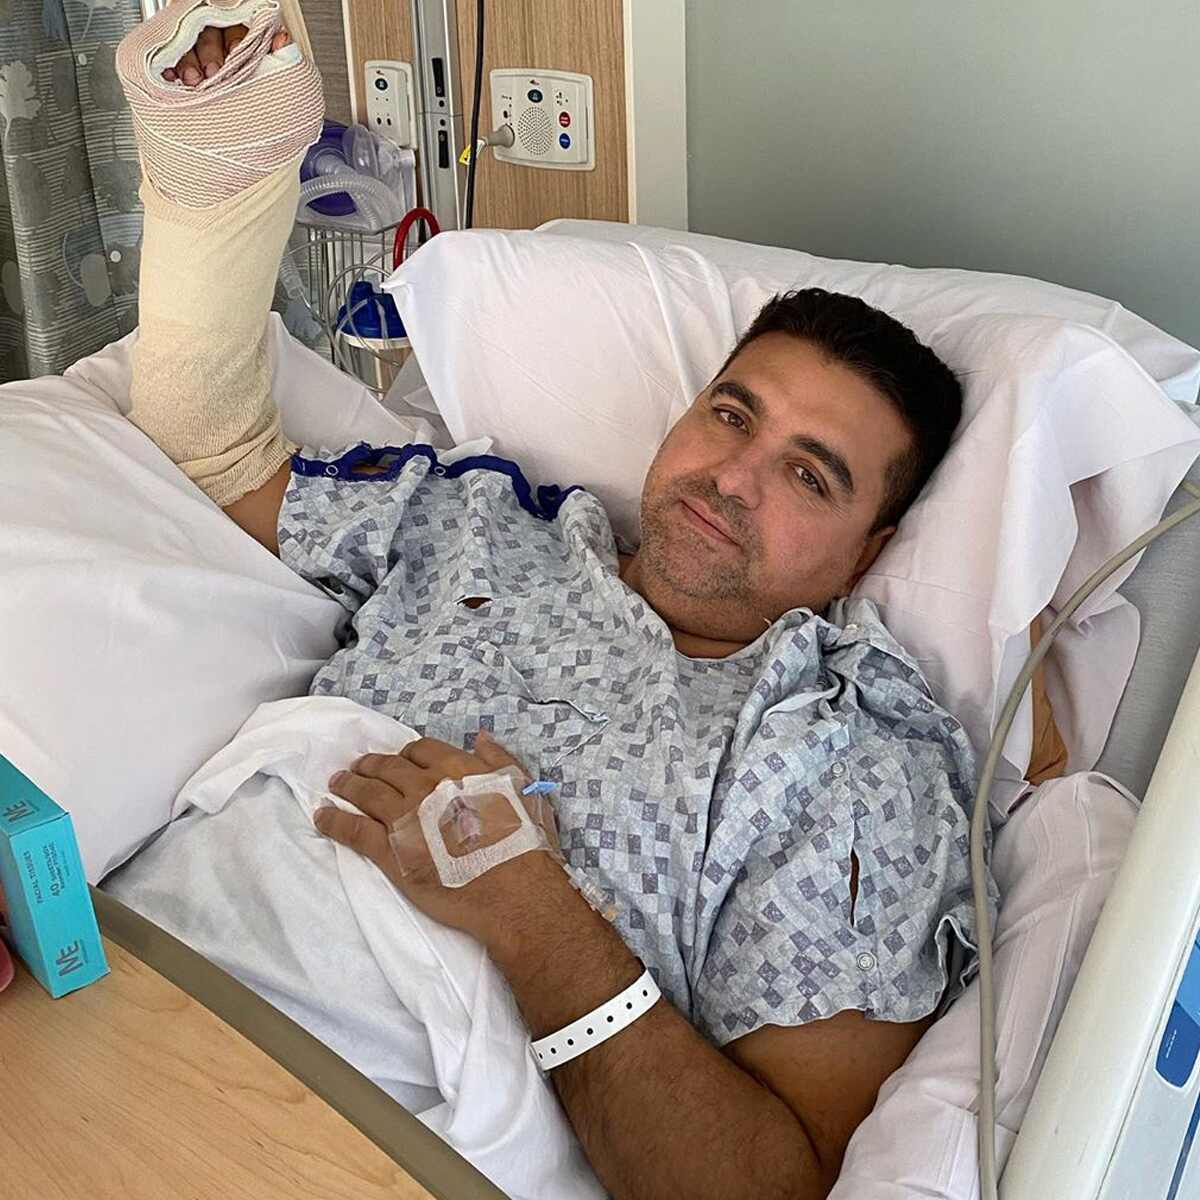 Buddy Valastro, hand injury